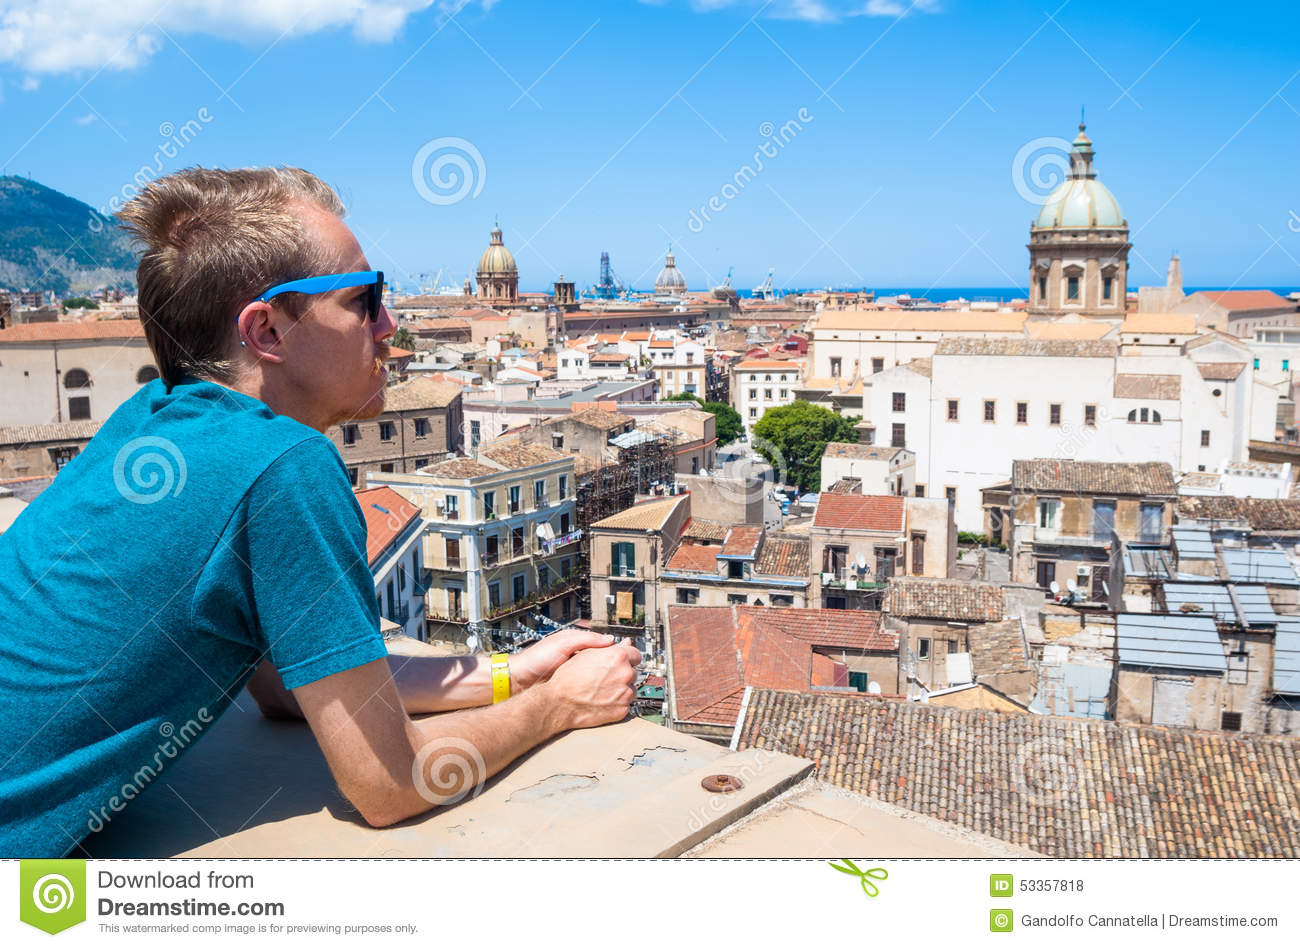 Young tourist observes the city of Palermo from above